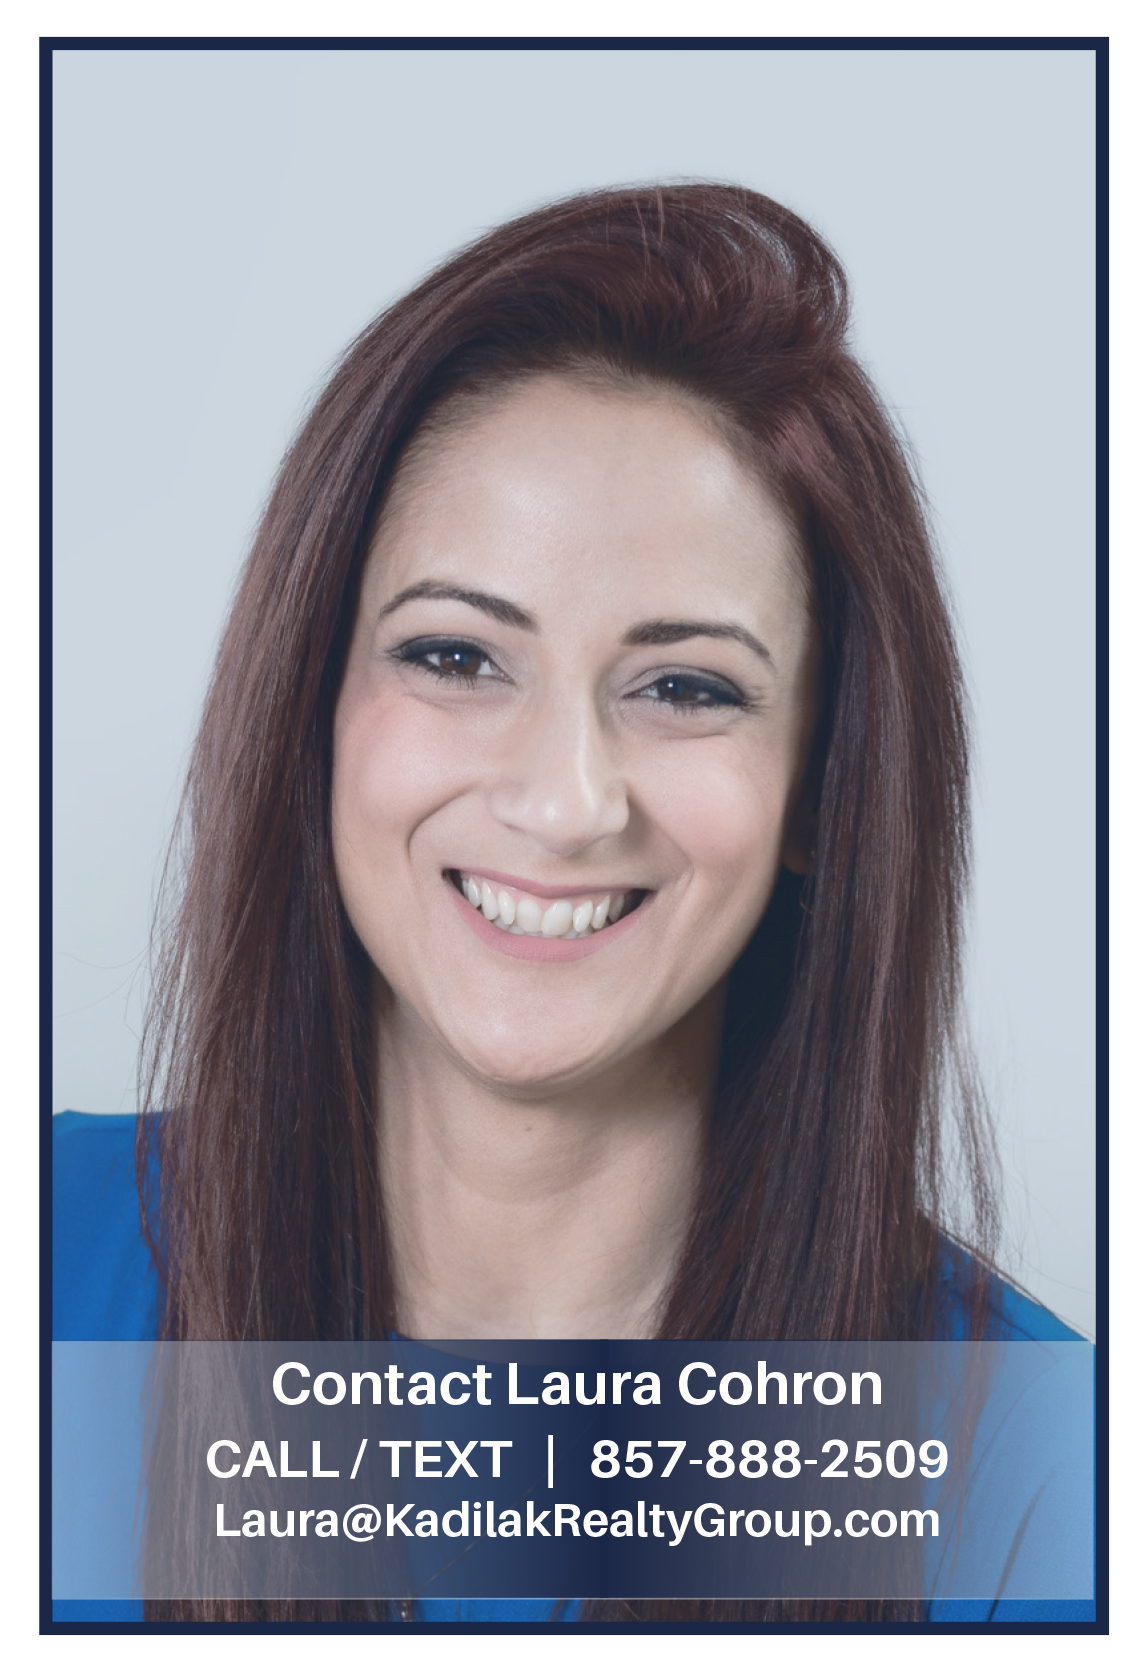 Laura Contact